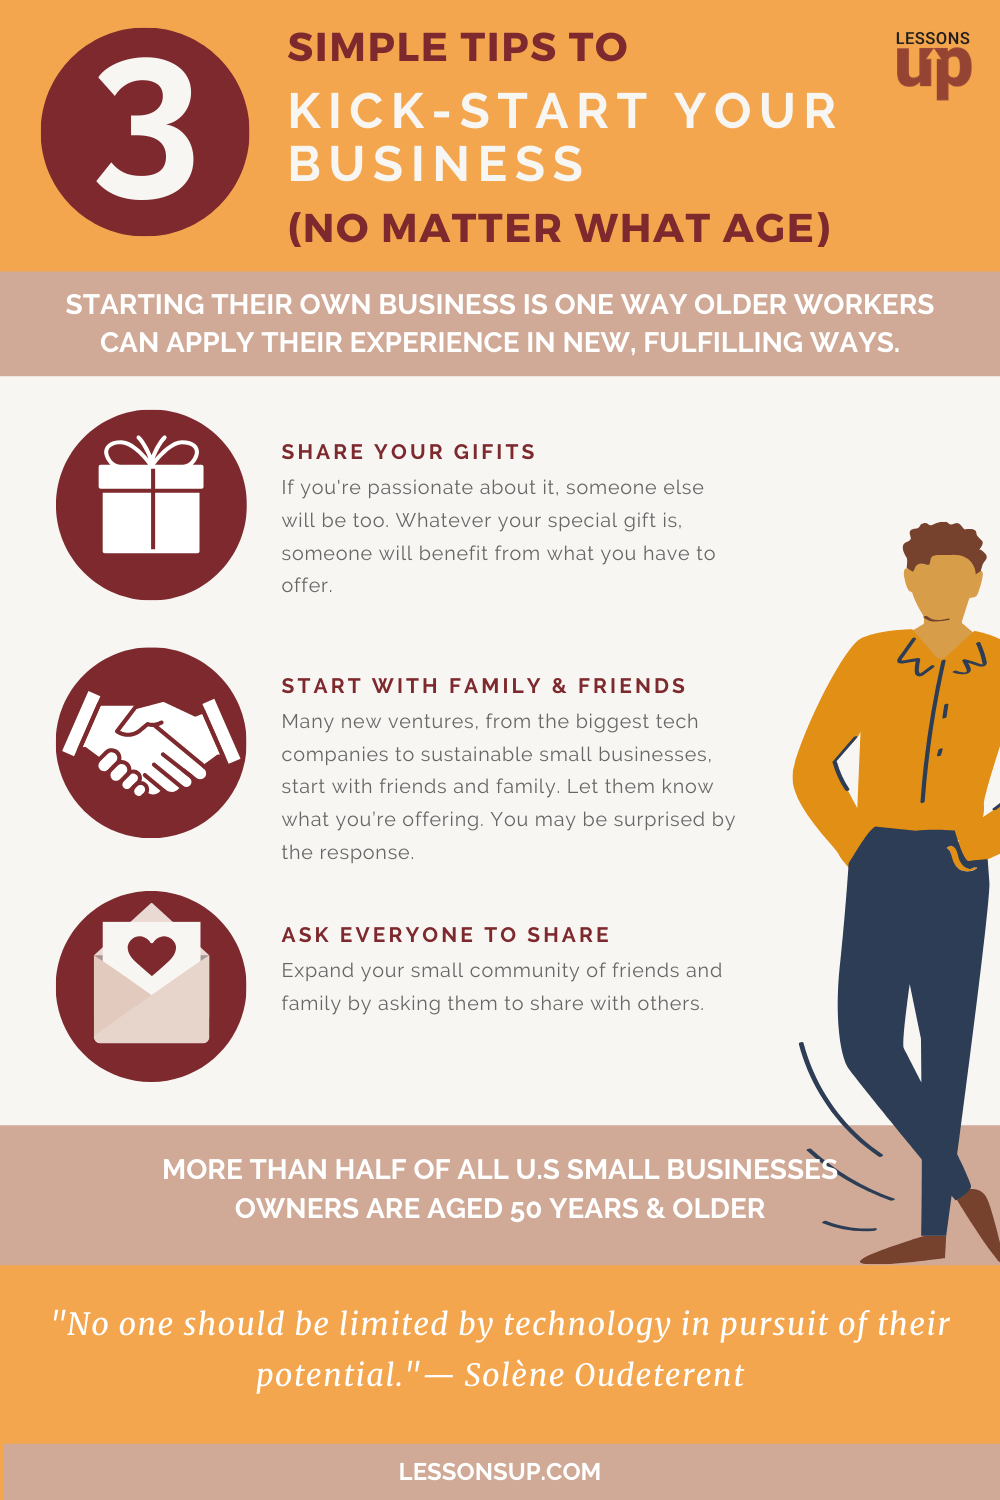 3 Simple Tips To Kick-Start Your Business (At Any Age)